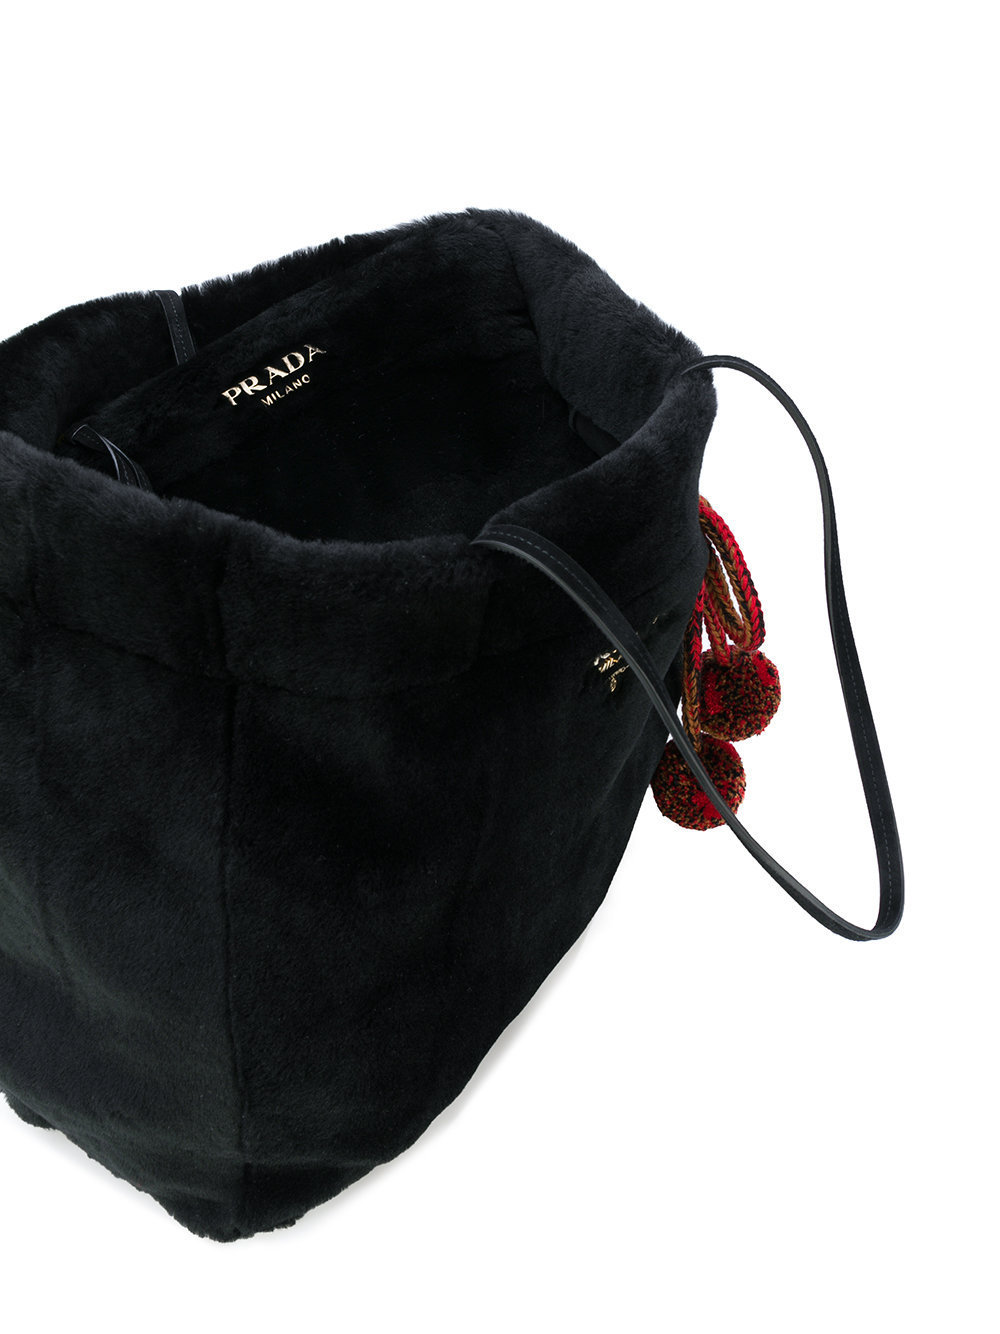 PR819 POM POM EMBELLISHED MOUTON SHOPPING TOTE BAG